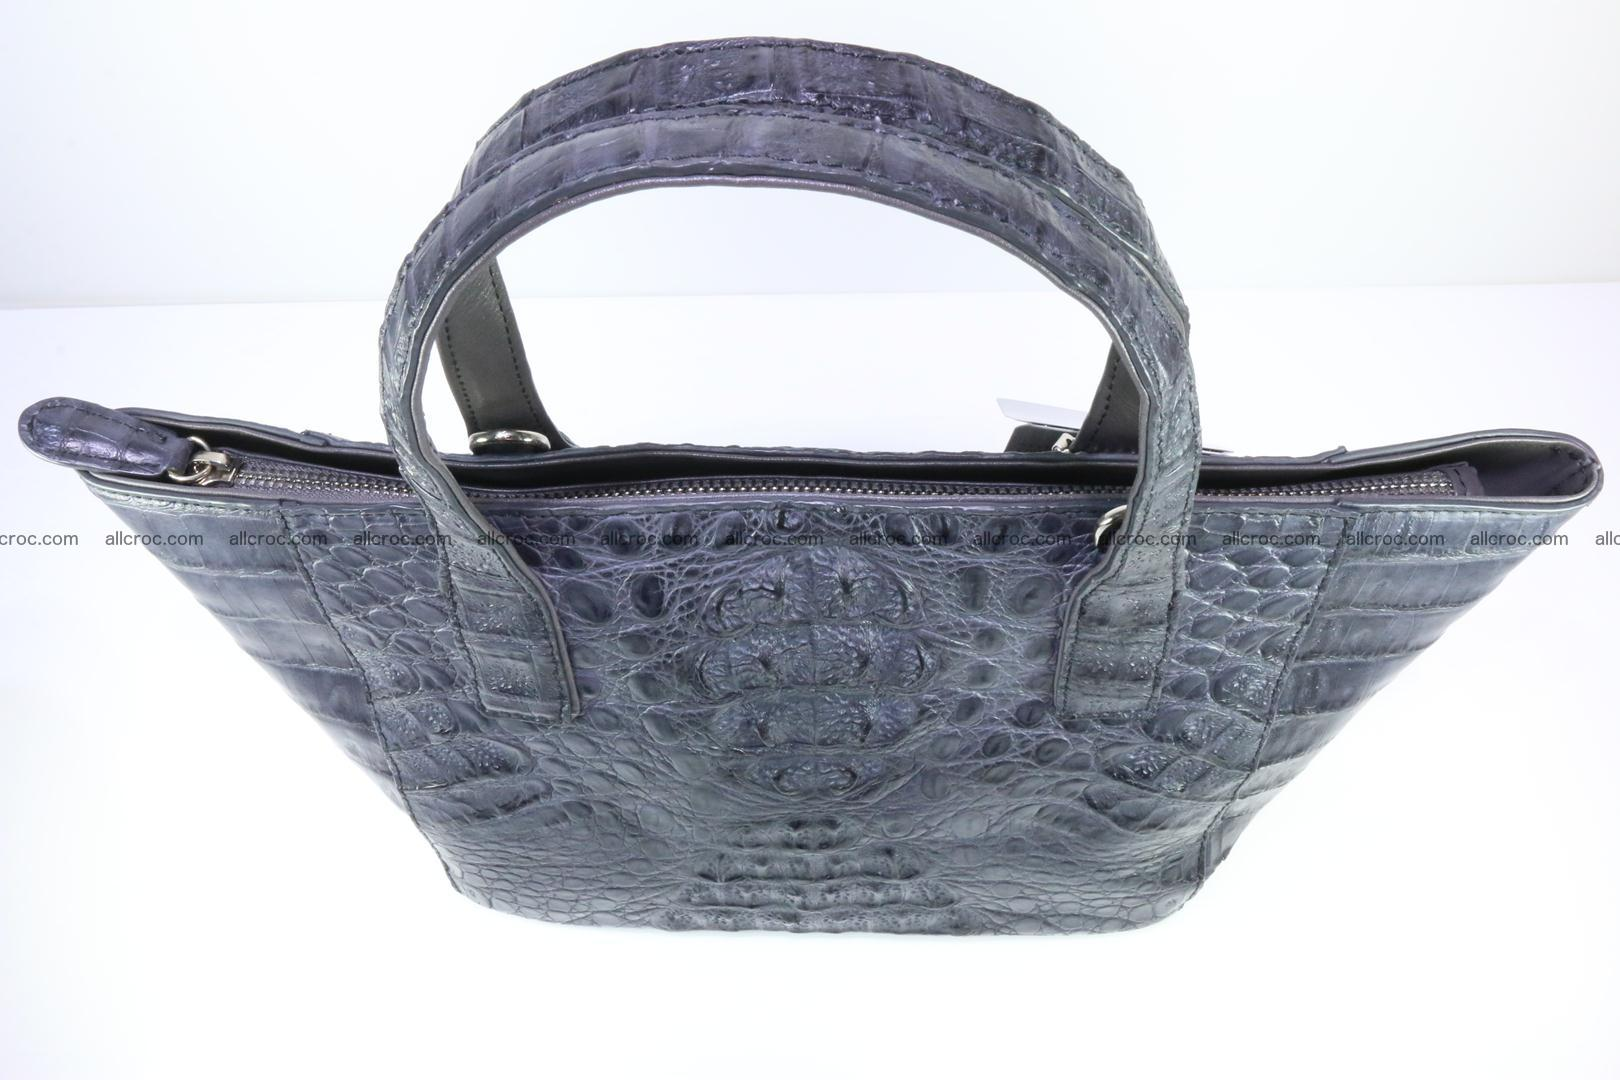 Genuine crocodile women's handbag 058 Foto 8